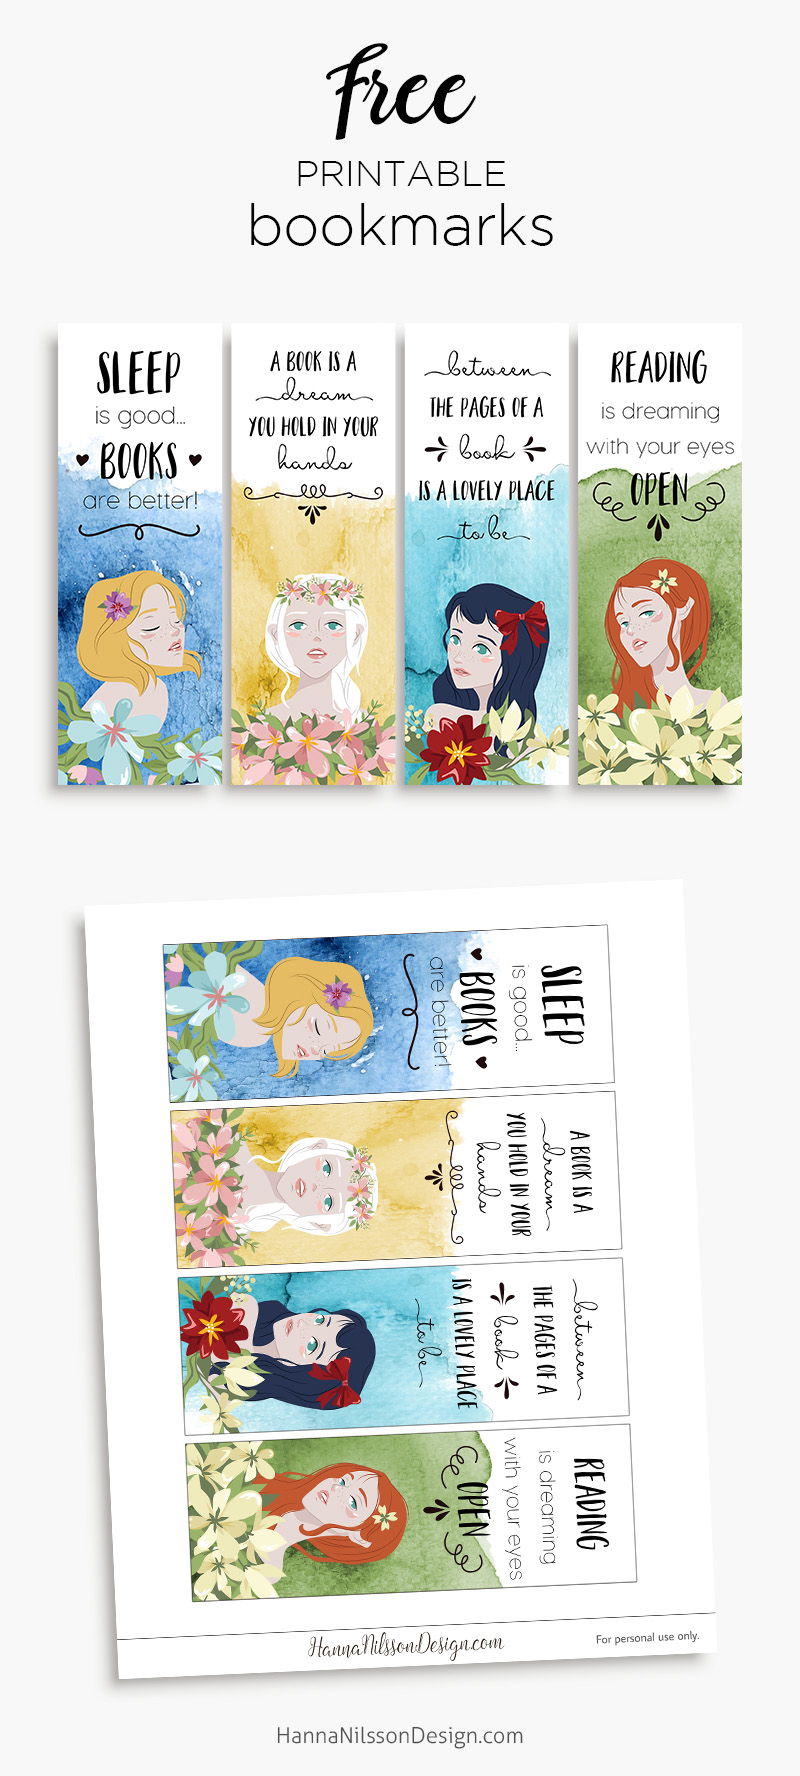 picture relating to Printable Bookmarks With Quotes named Estimate bookmarks Cost-free printable bookmarks with looking through